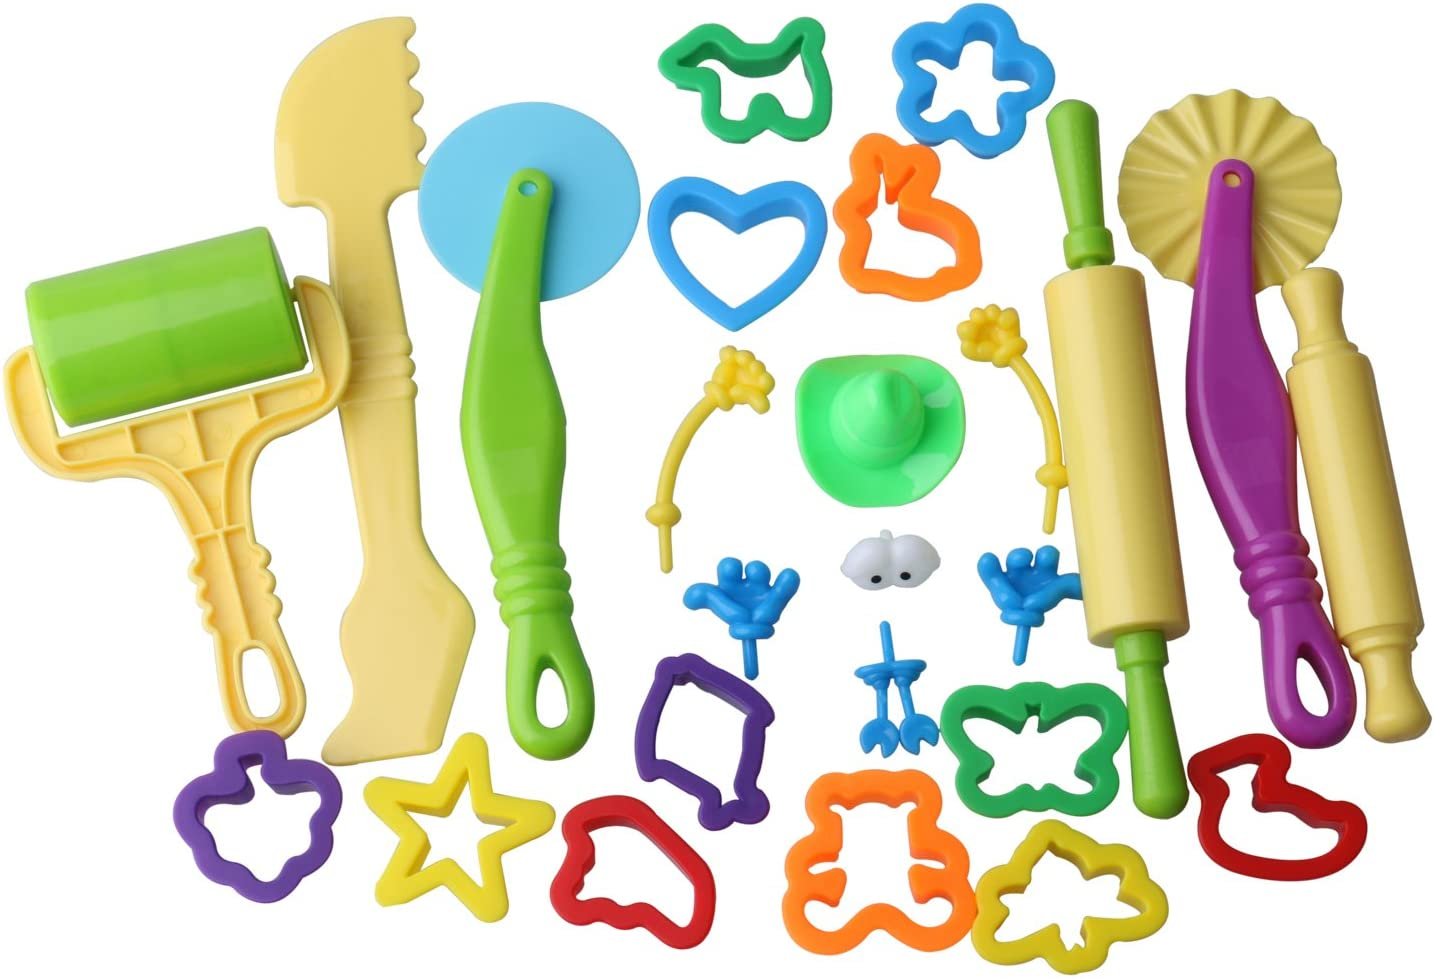 Top 13 Best Play Dough Sets For Boys (2020 Reviews & Buying Guide) 4